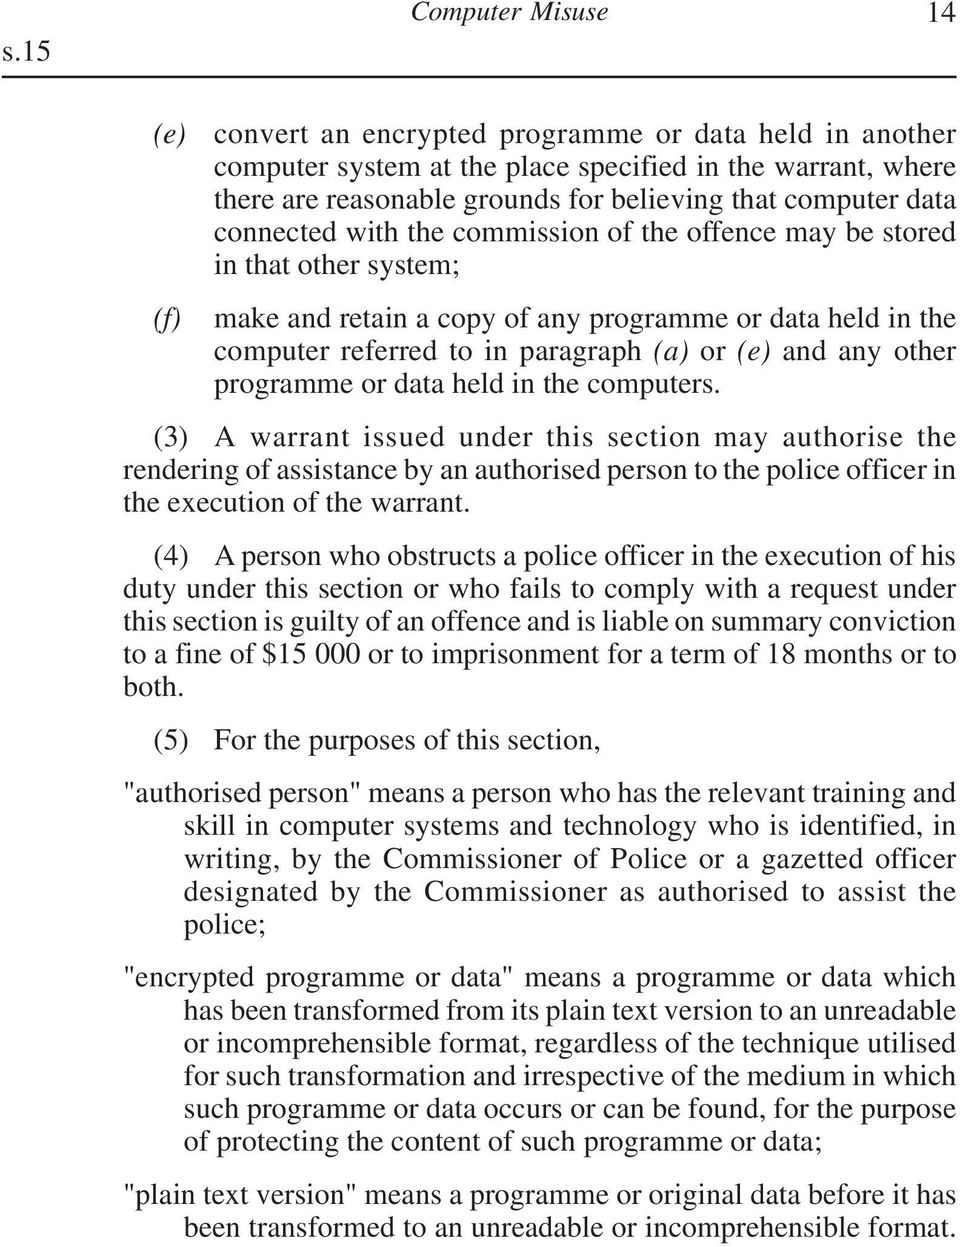 connected with the commission of the offence may be stored in that other system; make and retain a copy of any programme or data held in the computer referred to in paragraph or (e) and any other